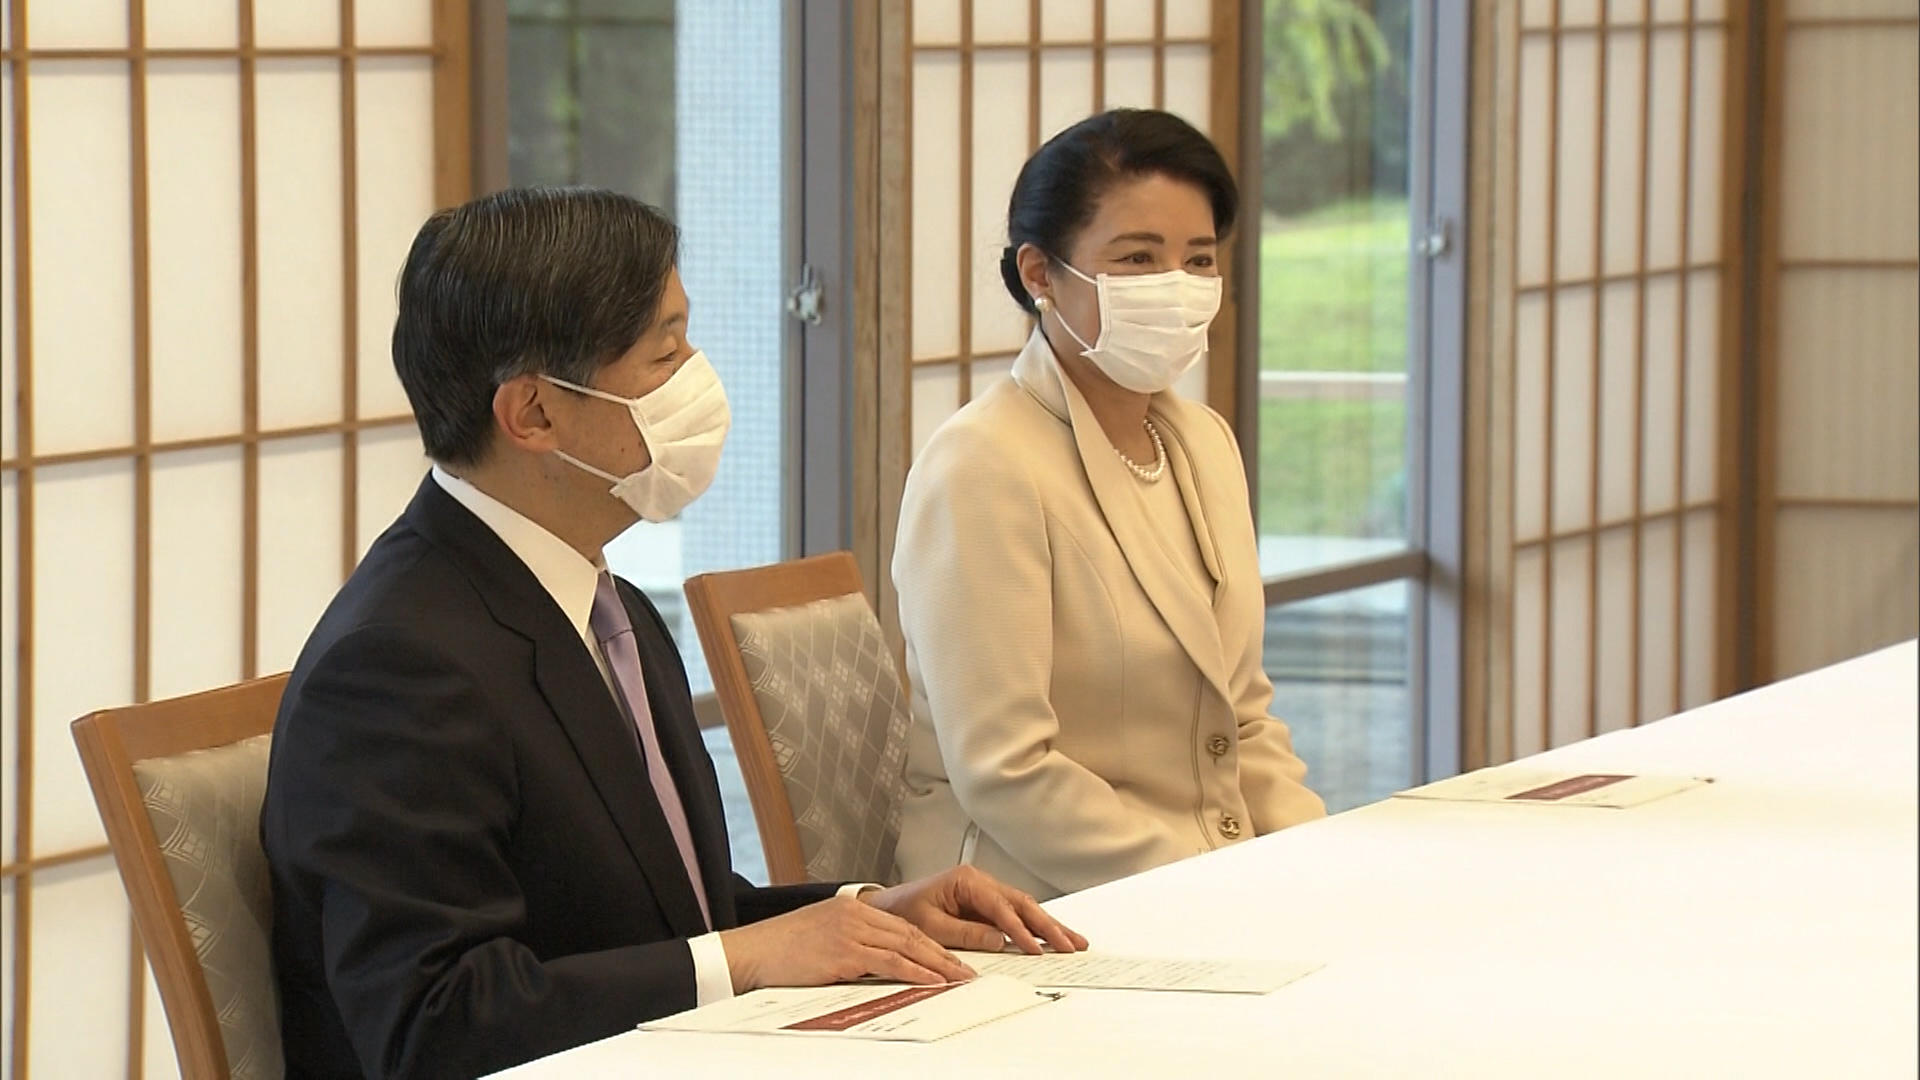 Japan's Emperor thanks medical workers on frontlines